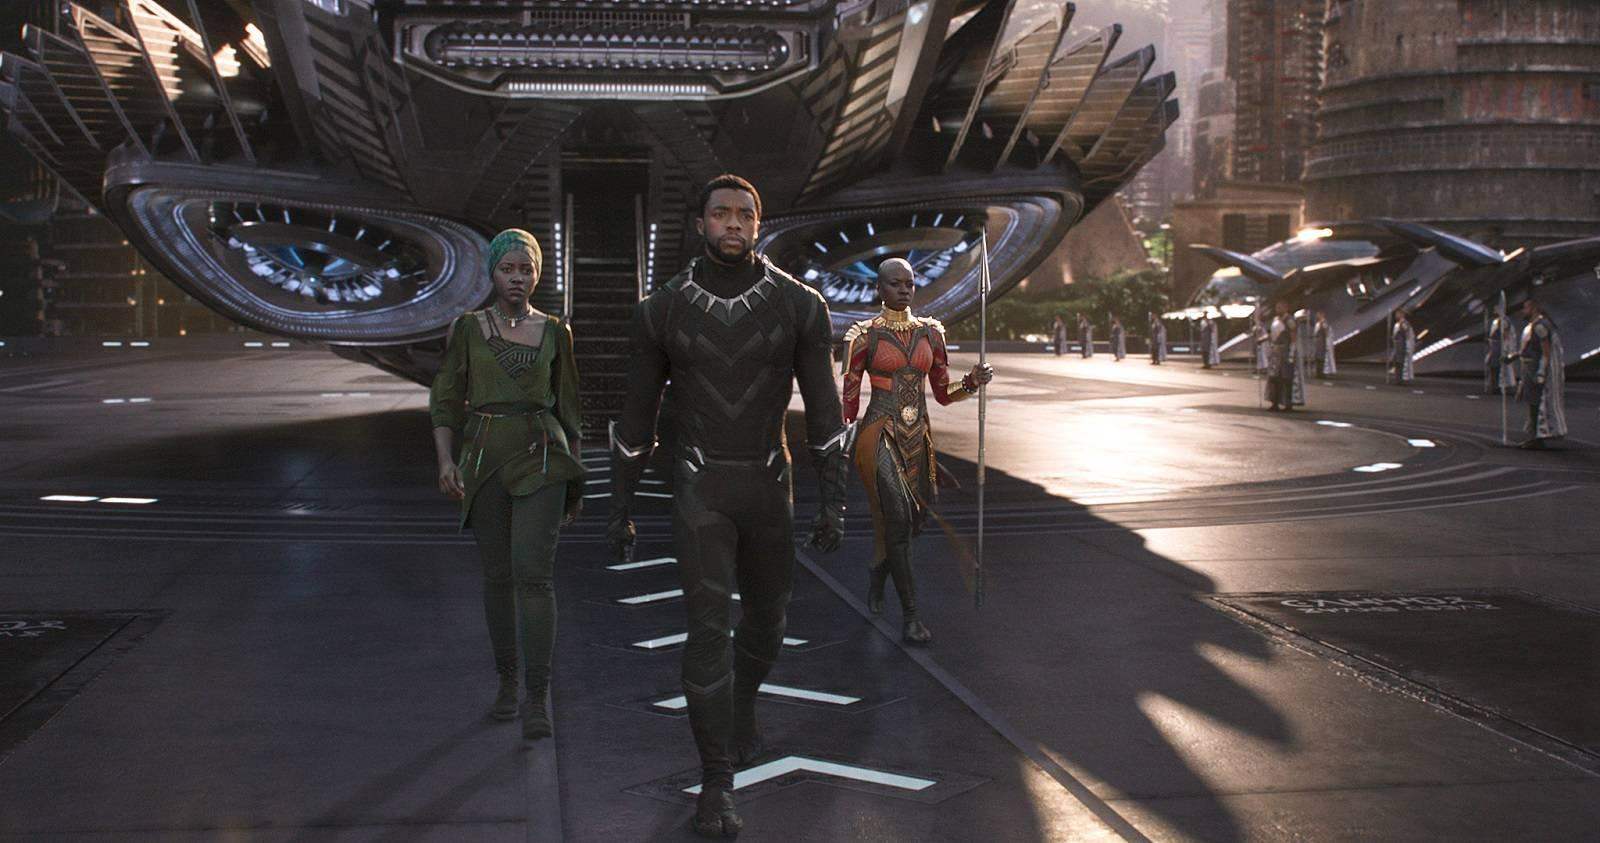 Marvel's new Black Panther actor might have been revealed - Yahoo Entertainment